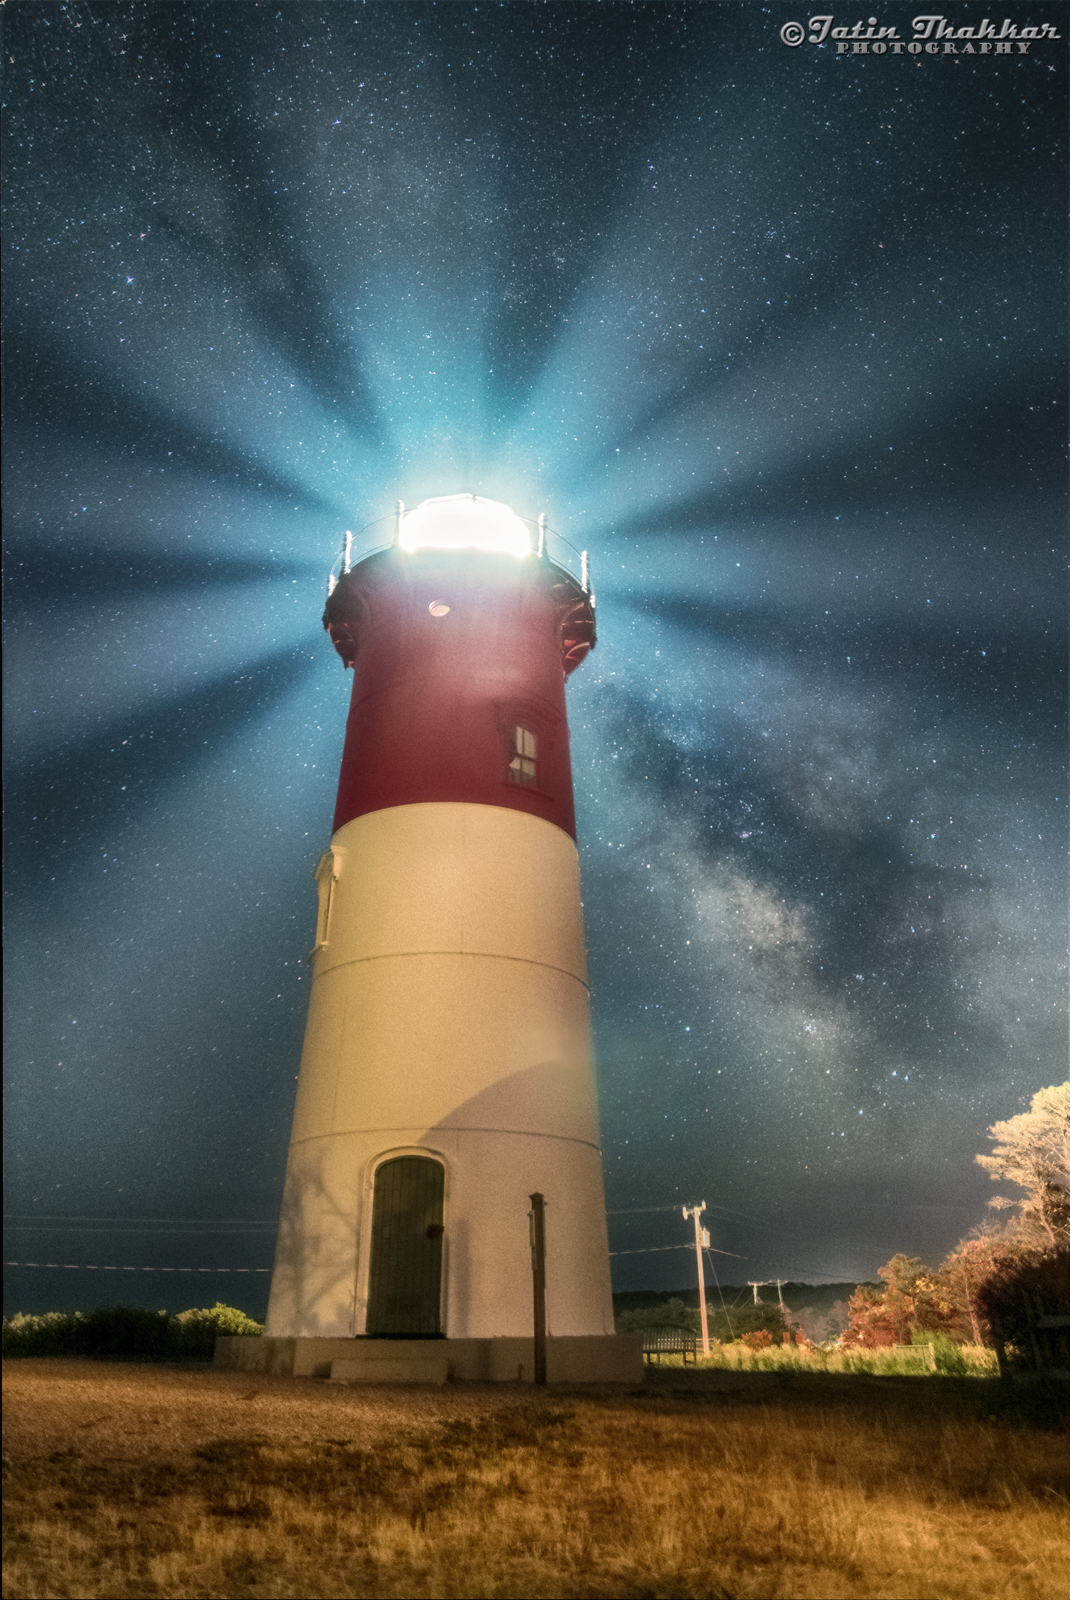 Milky Way Illuminated in Lighthouse Glow